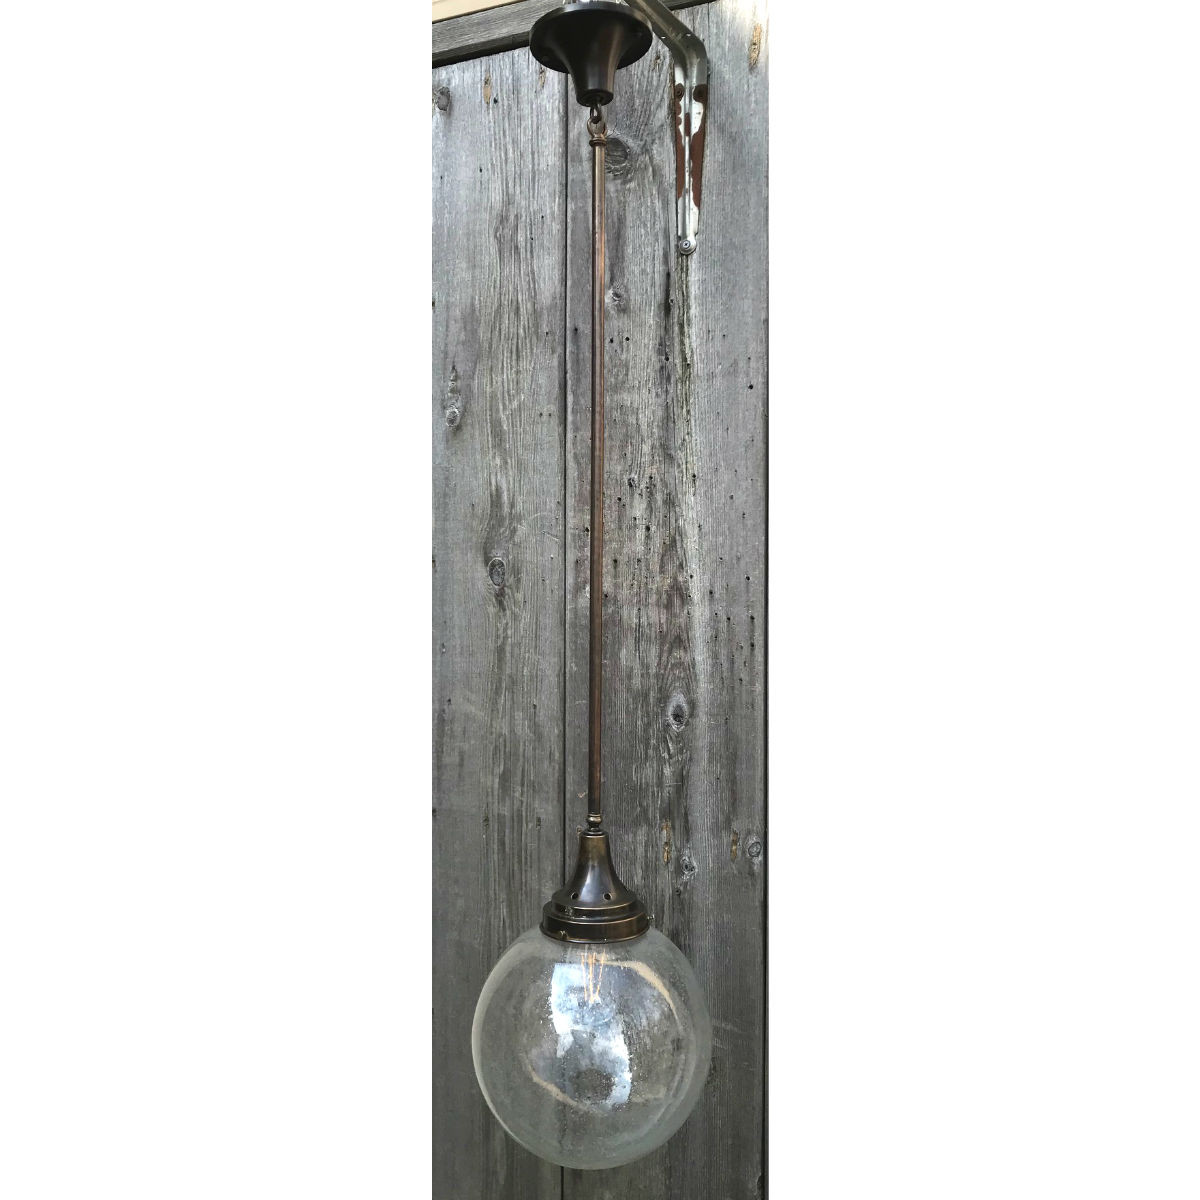 L19070 - Antique Single Light Pendant Fixture